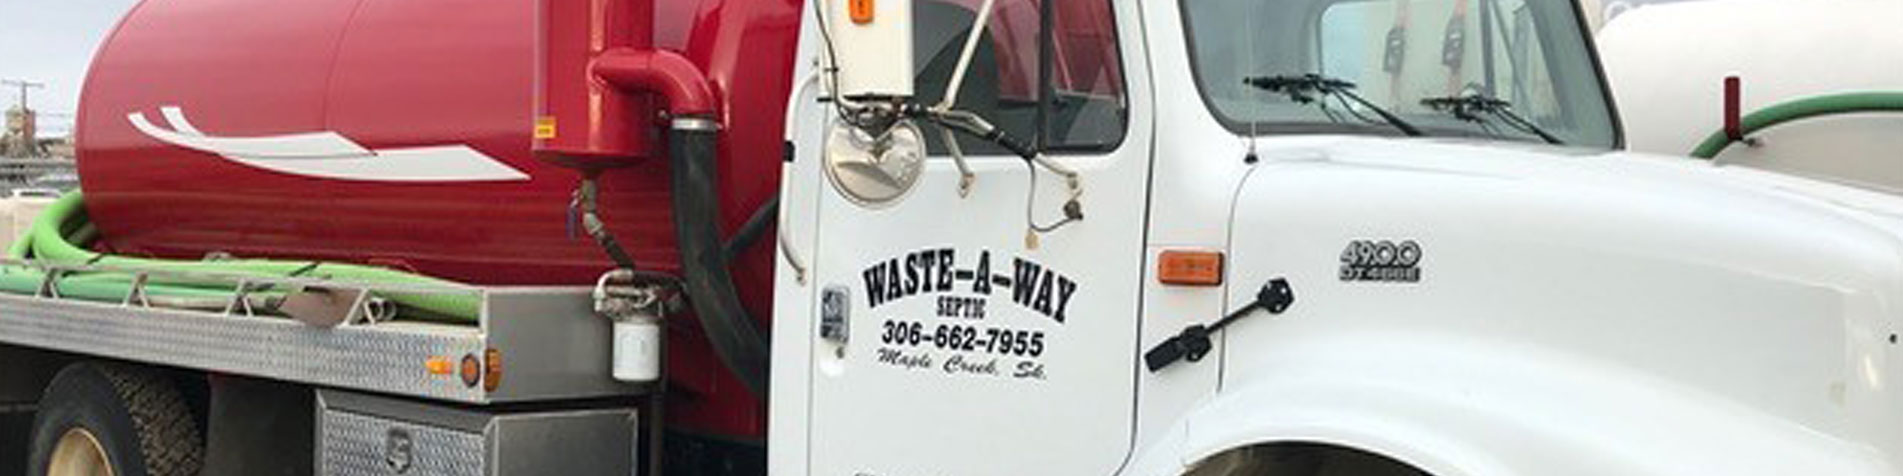 Wate-A-Way Septic truck